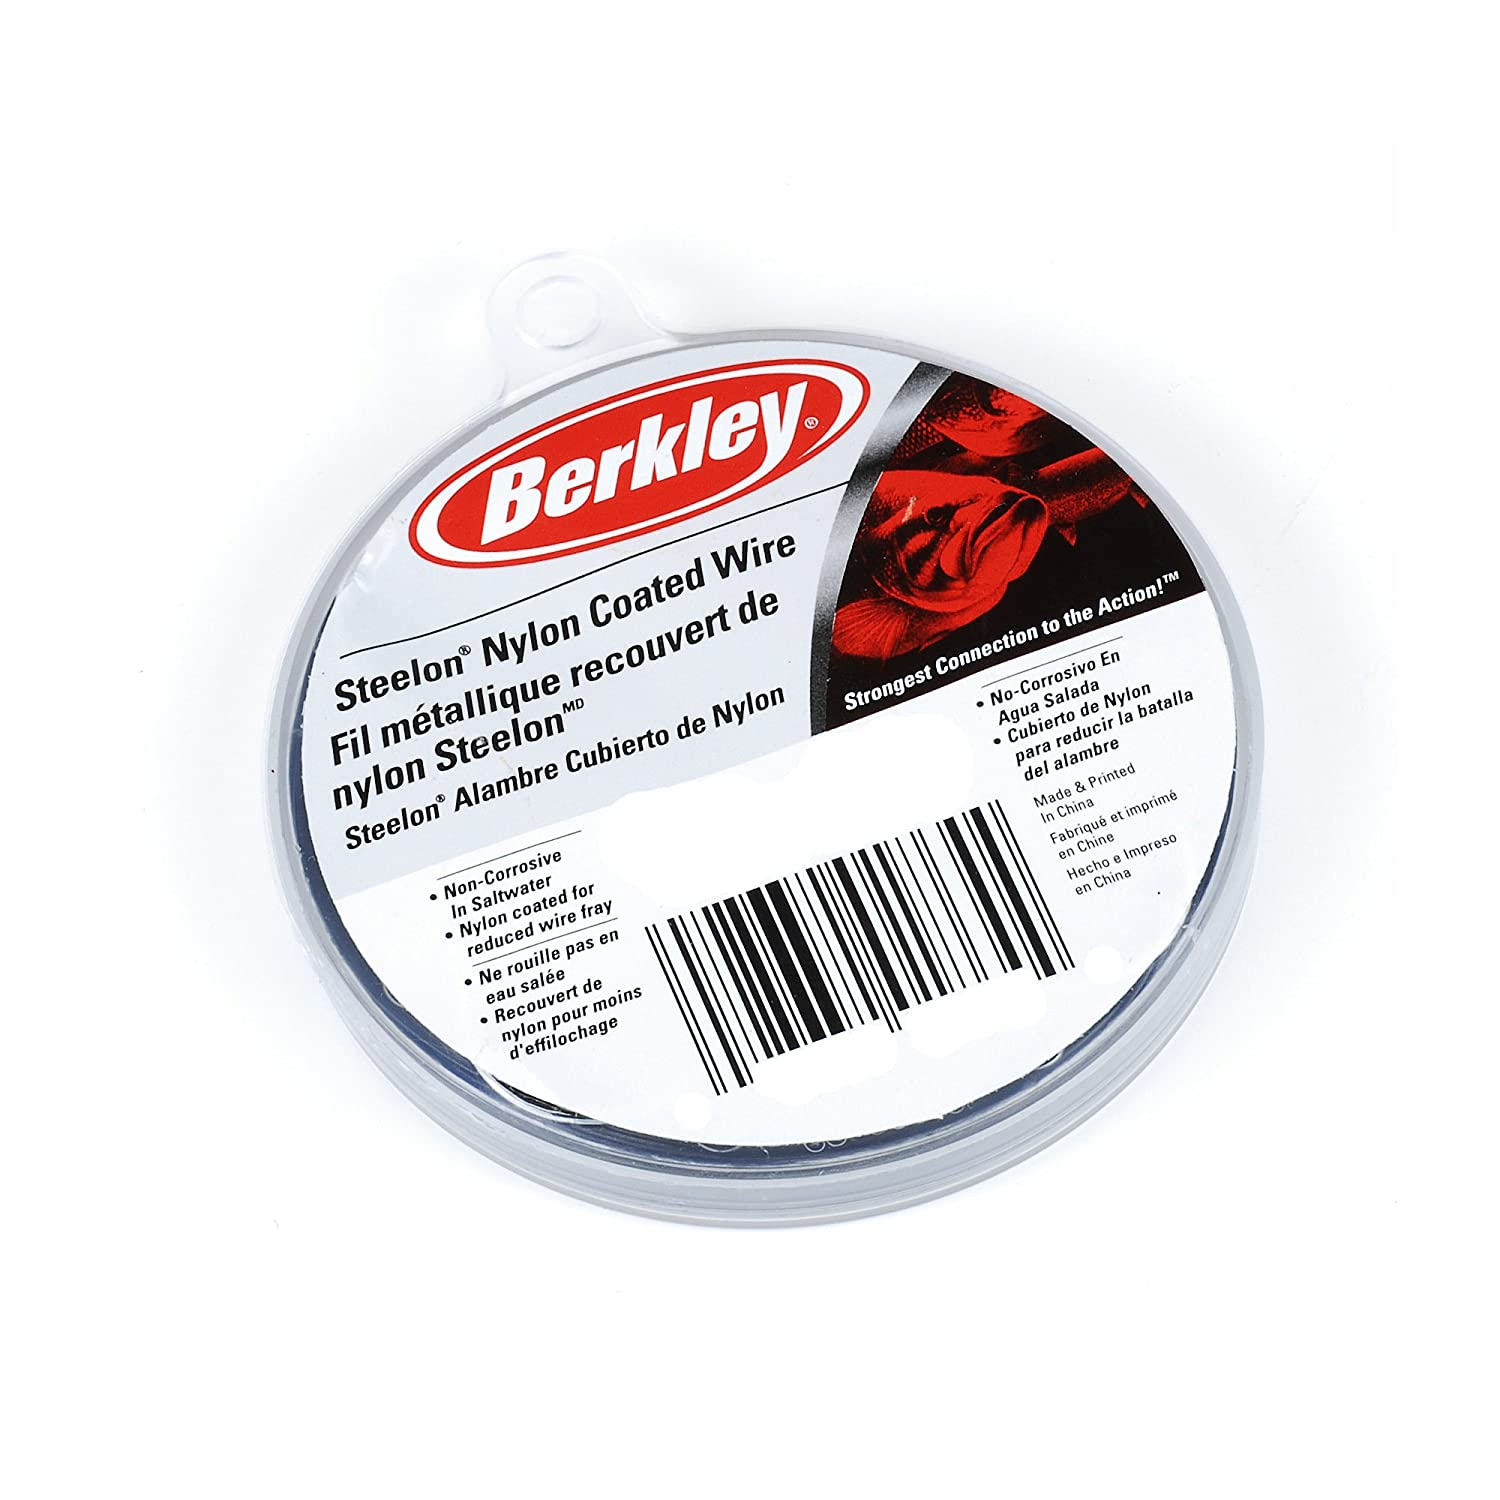 Berkley Steelon Nylon Coated Wire with Line Test, Black, 30-Feet/80-Pound Pure Fishing D80BL